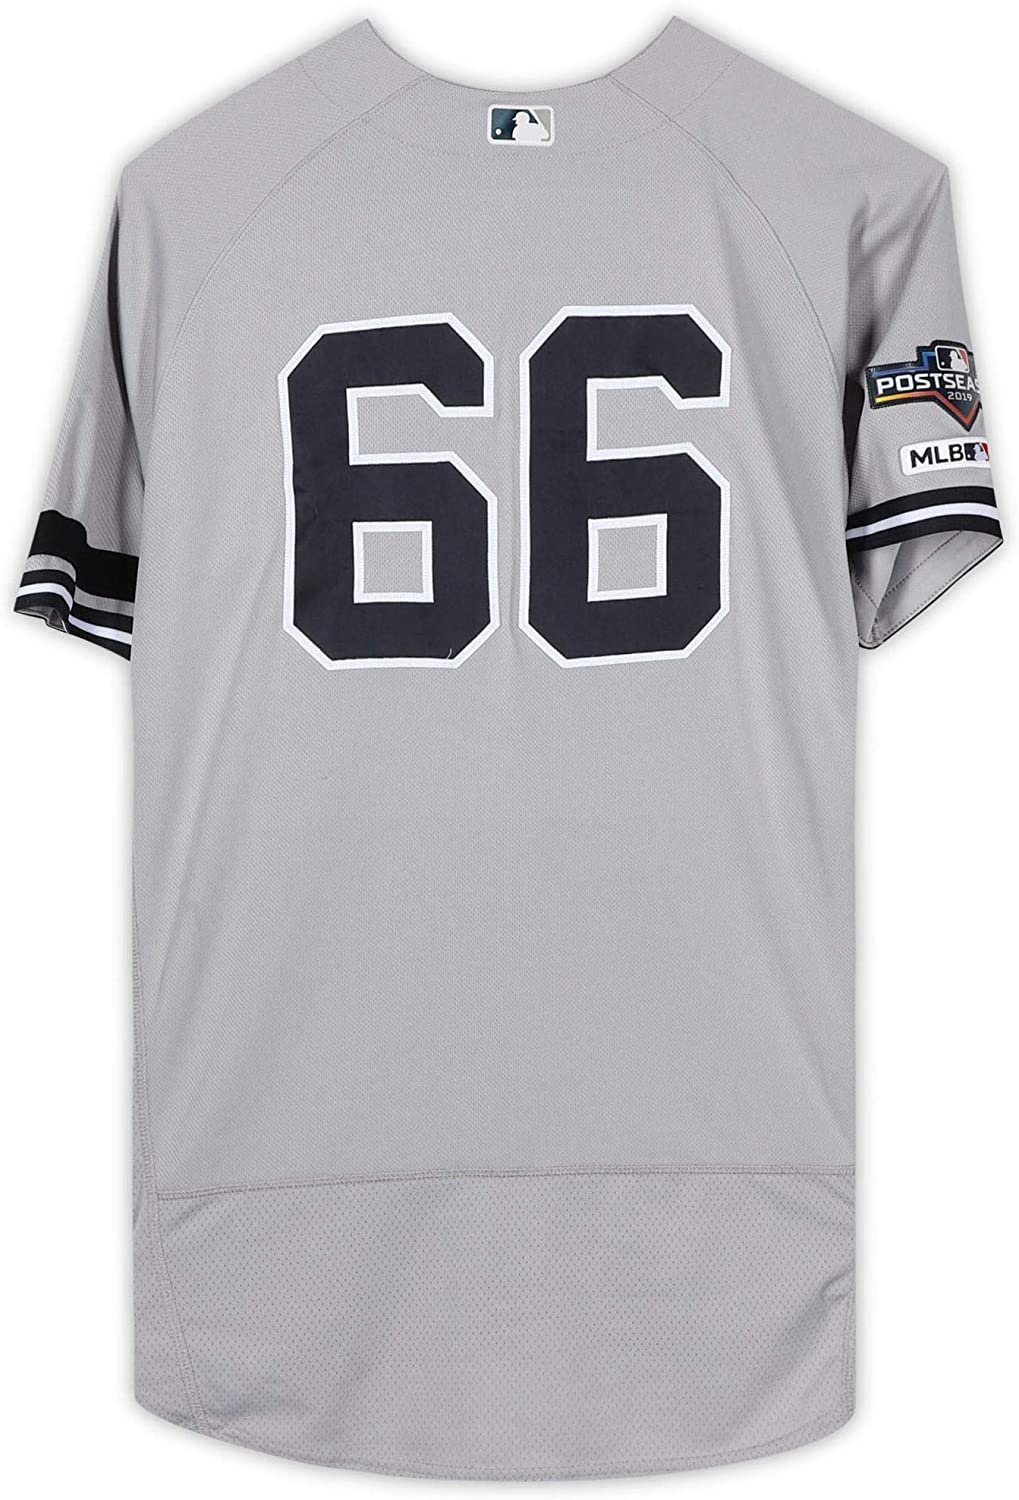 Kyle Higashioka New York Yankees Game-Used #66 Gray Jersey vs. Texas Rangers on September 28, 2019 - Size 44 - Fanatics Authentic Certified